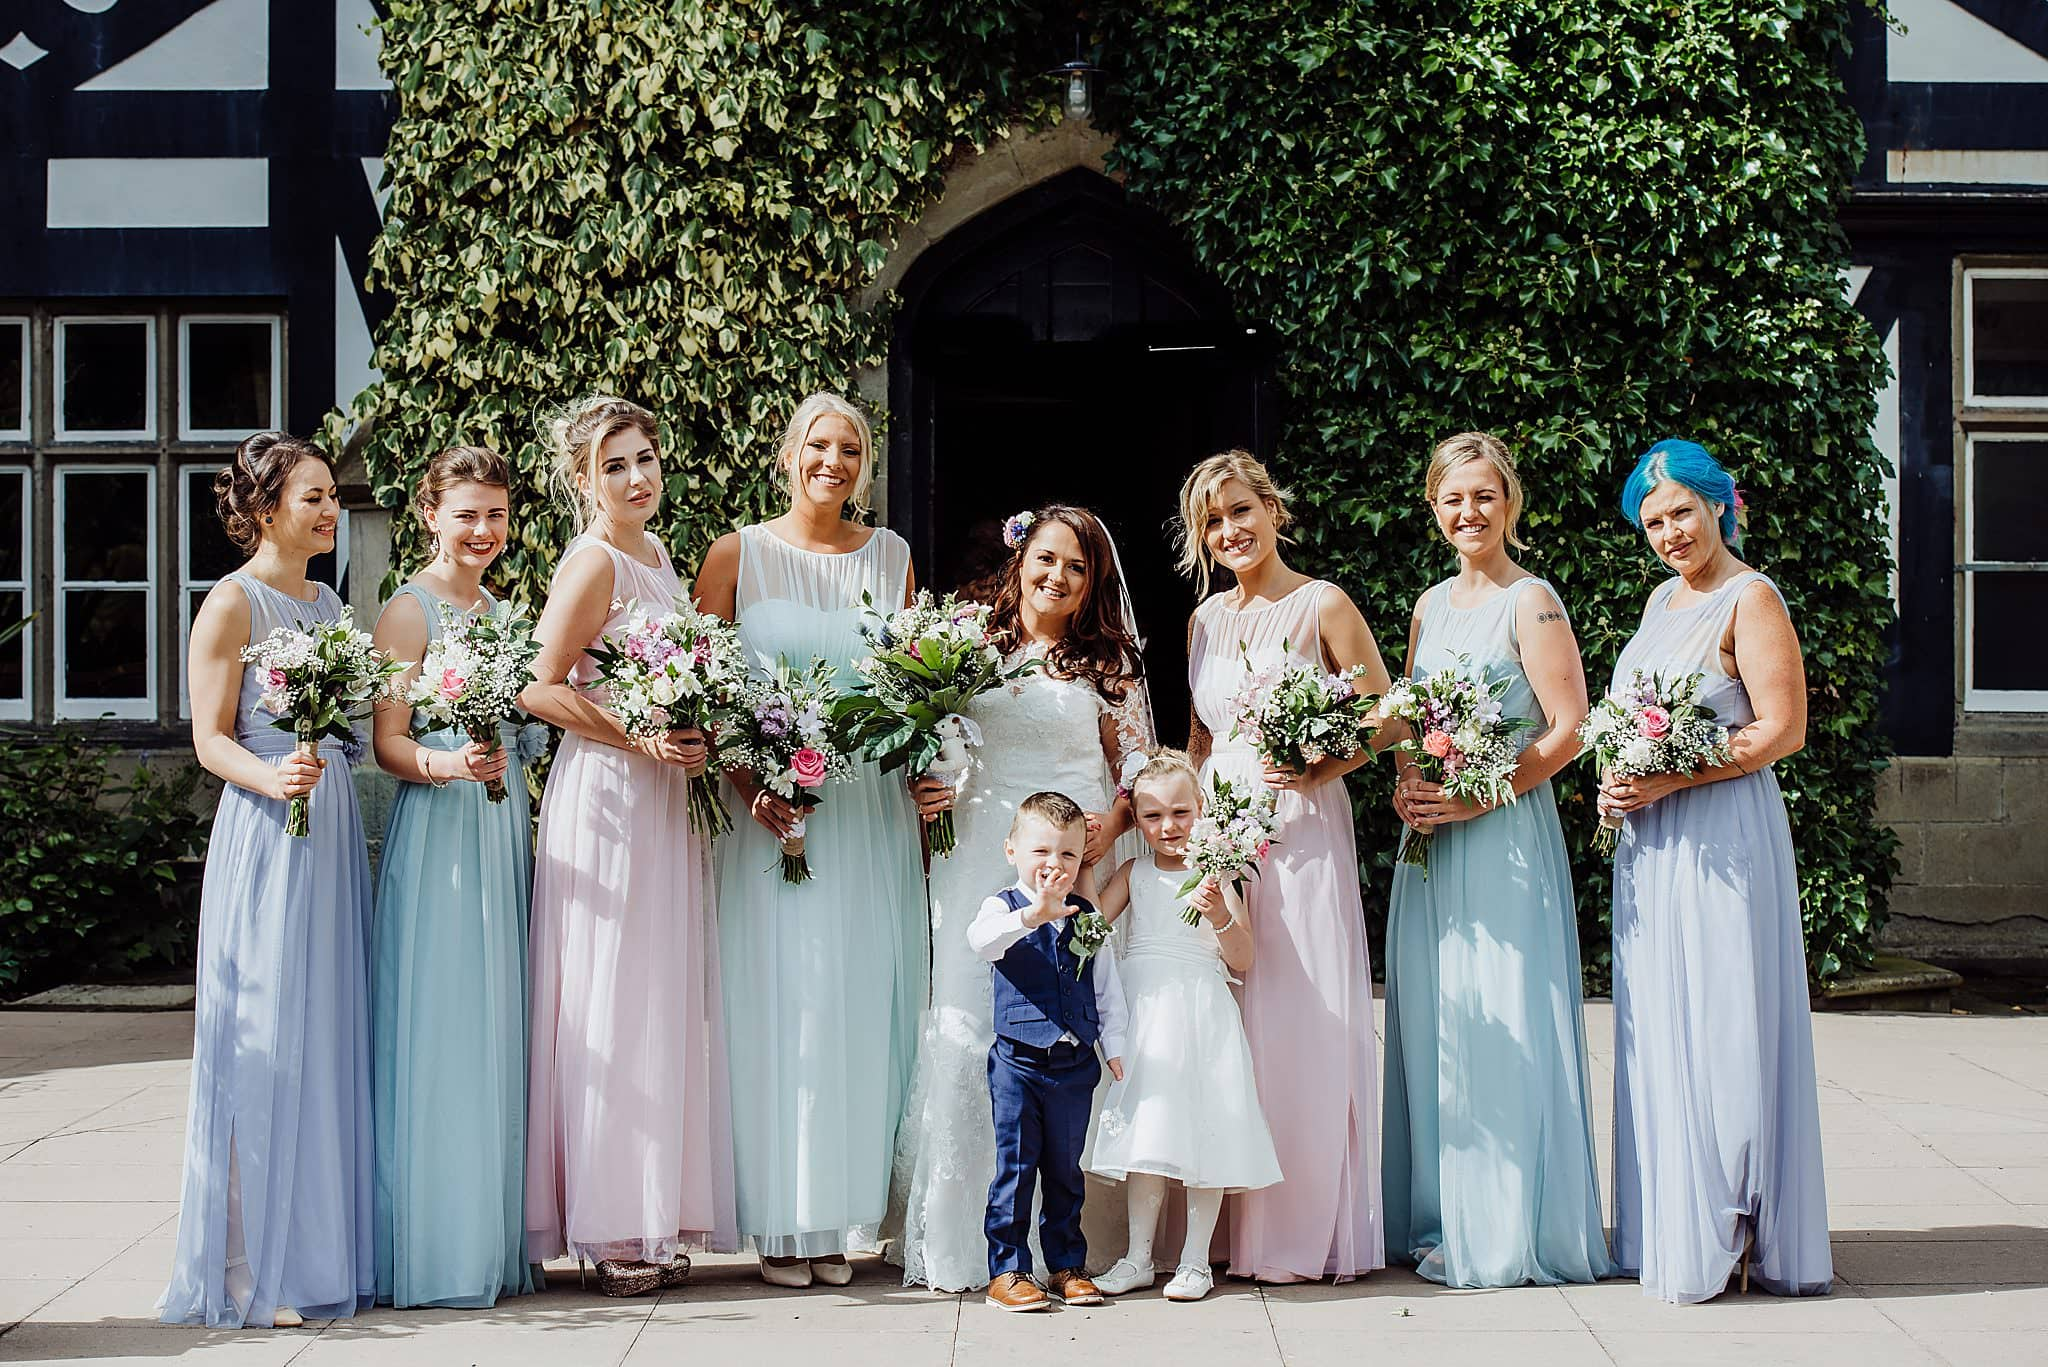 A large group photo of the wedding party with bridesmaids wearing multi coloured dresses